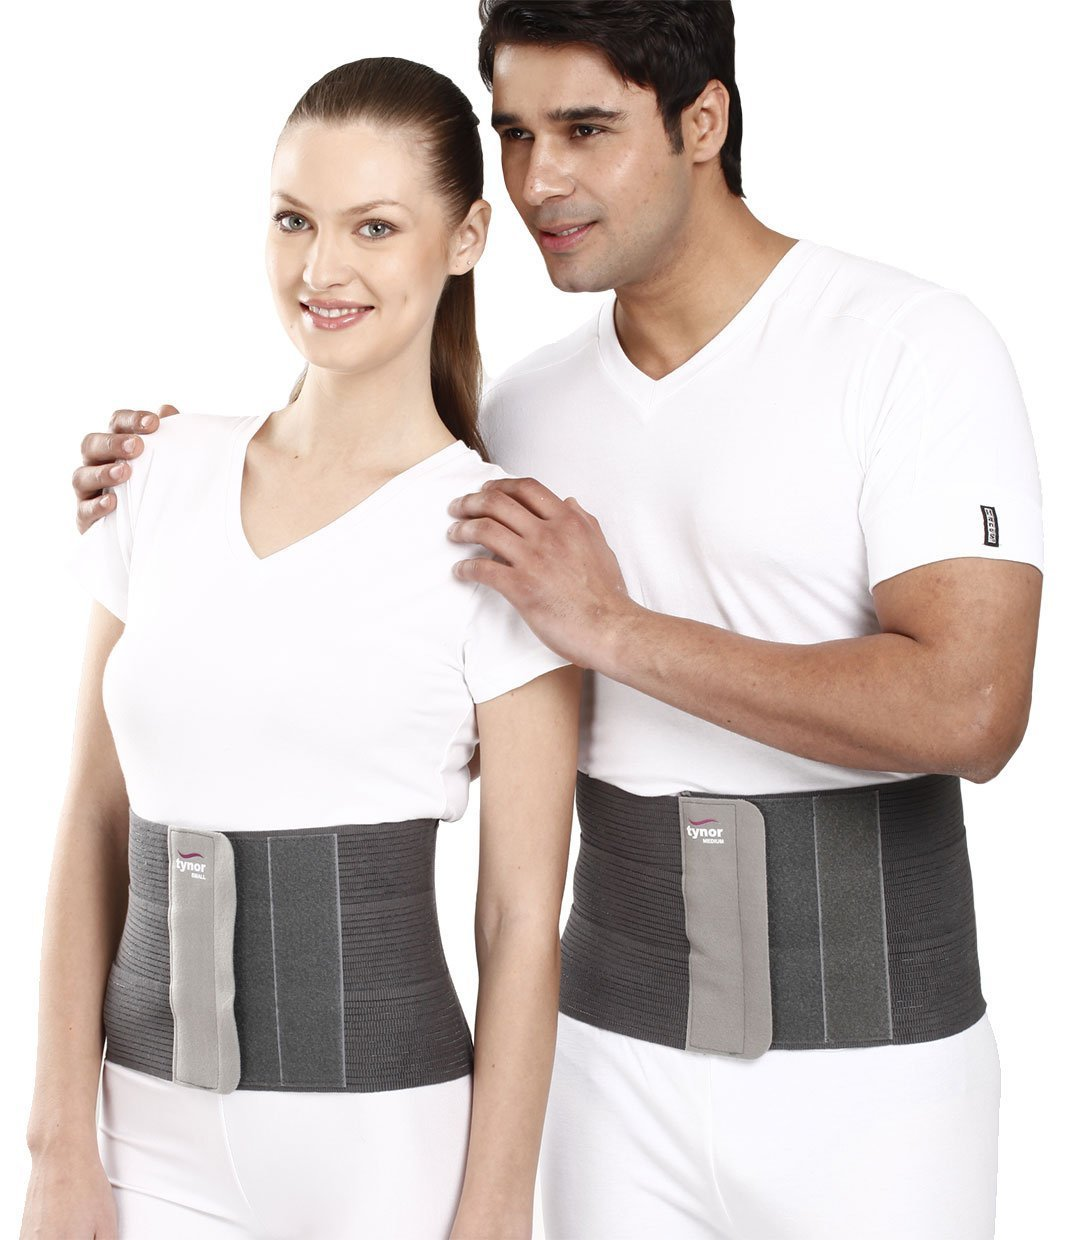 Tynor® Tummy Trimmer/Ventral Hernia Umbilical Belt 8″-umbilical Hernia belt perth